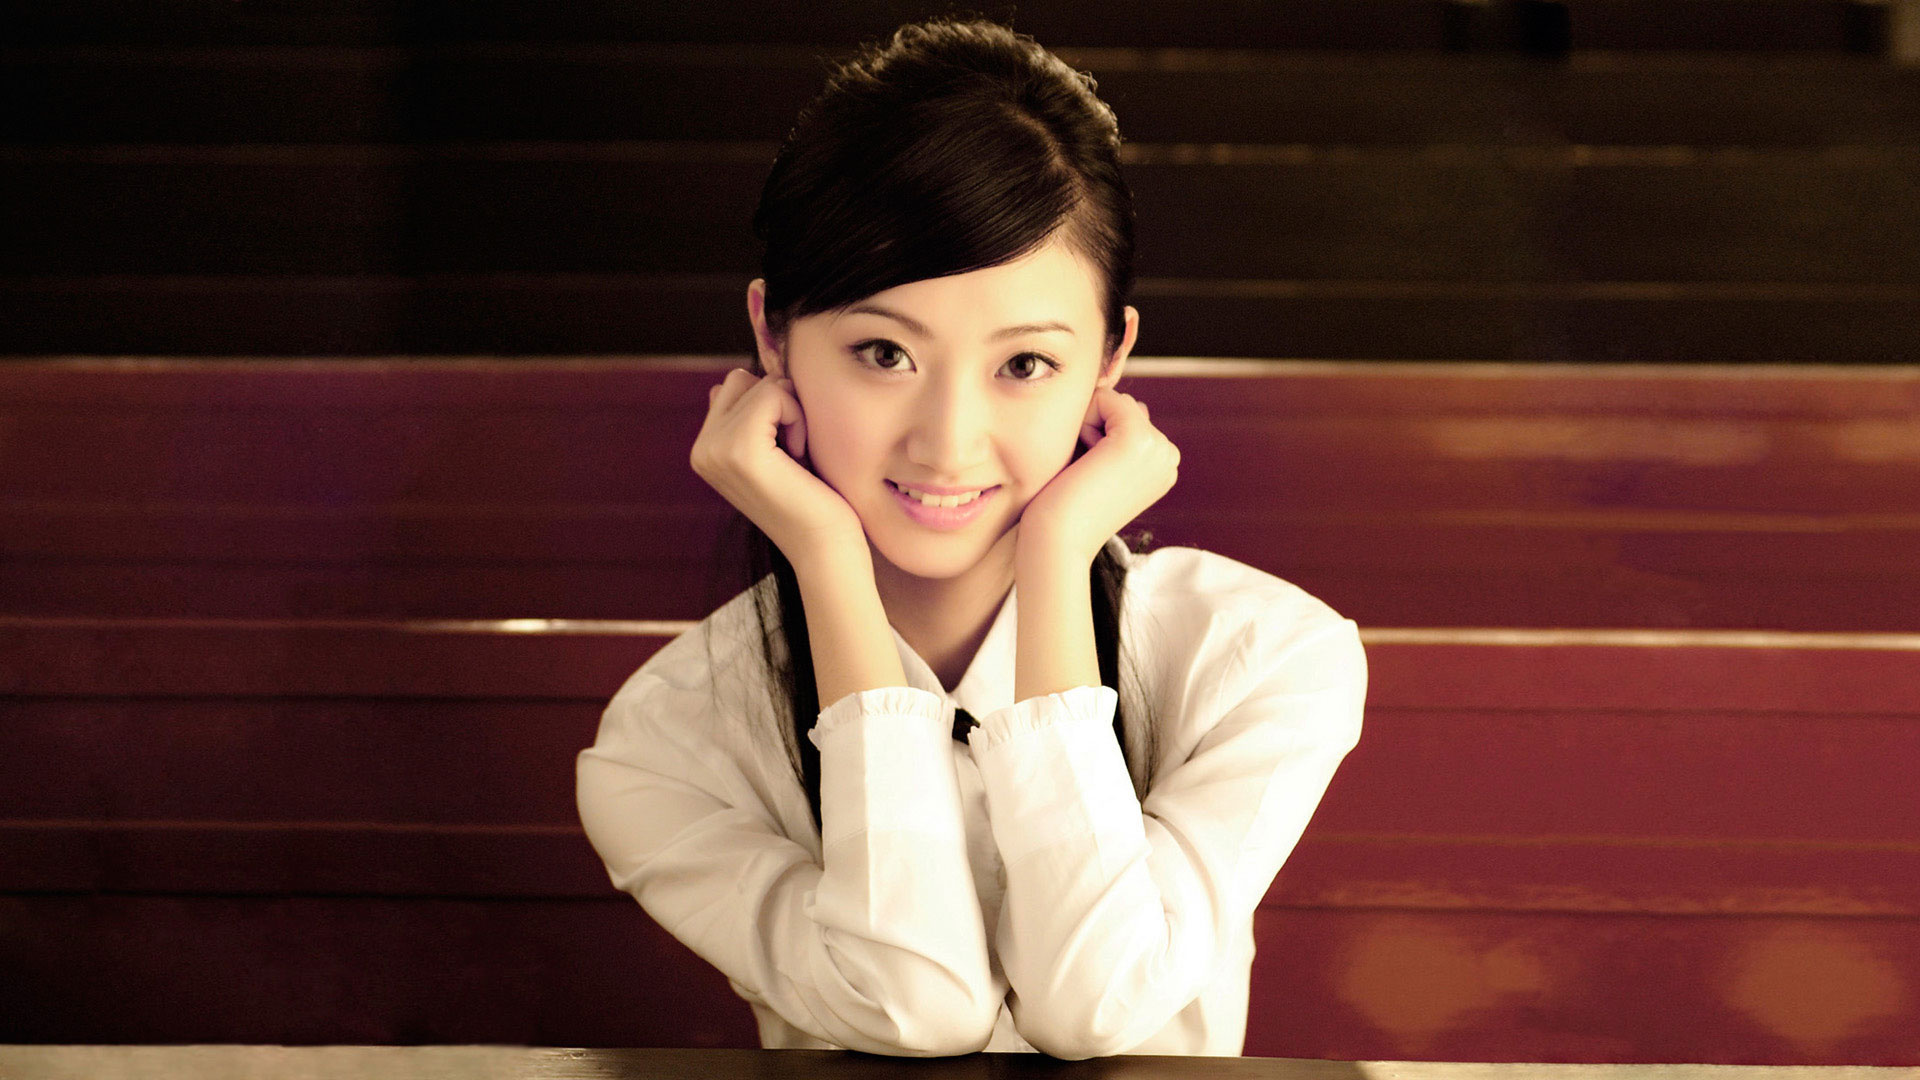 Jing Tian Wallpapers Images Photos Pictures Backgrounds